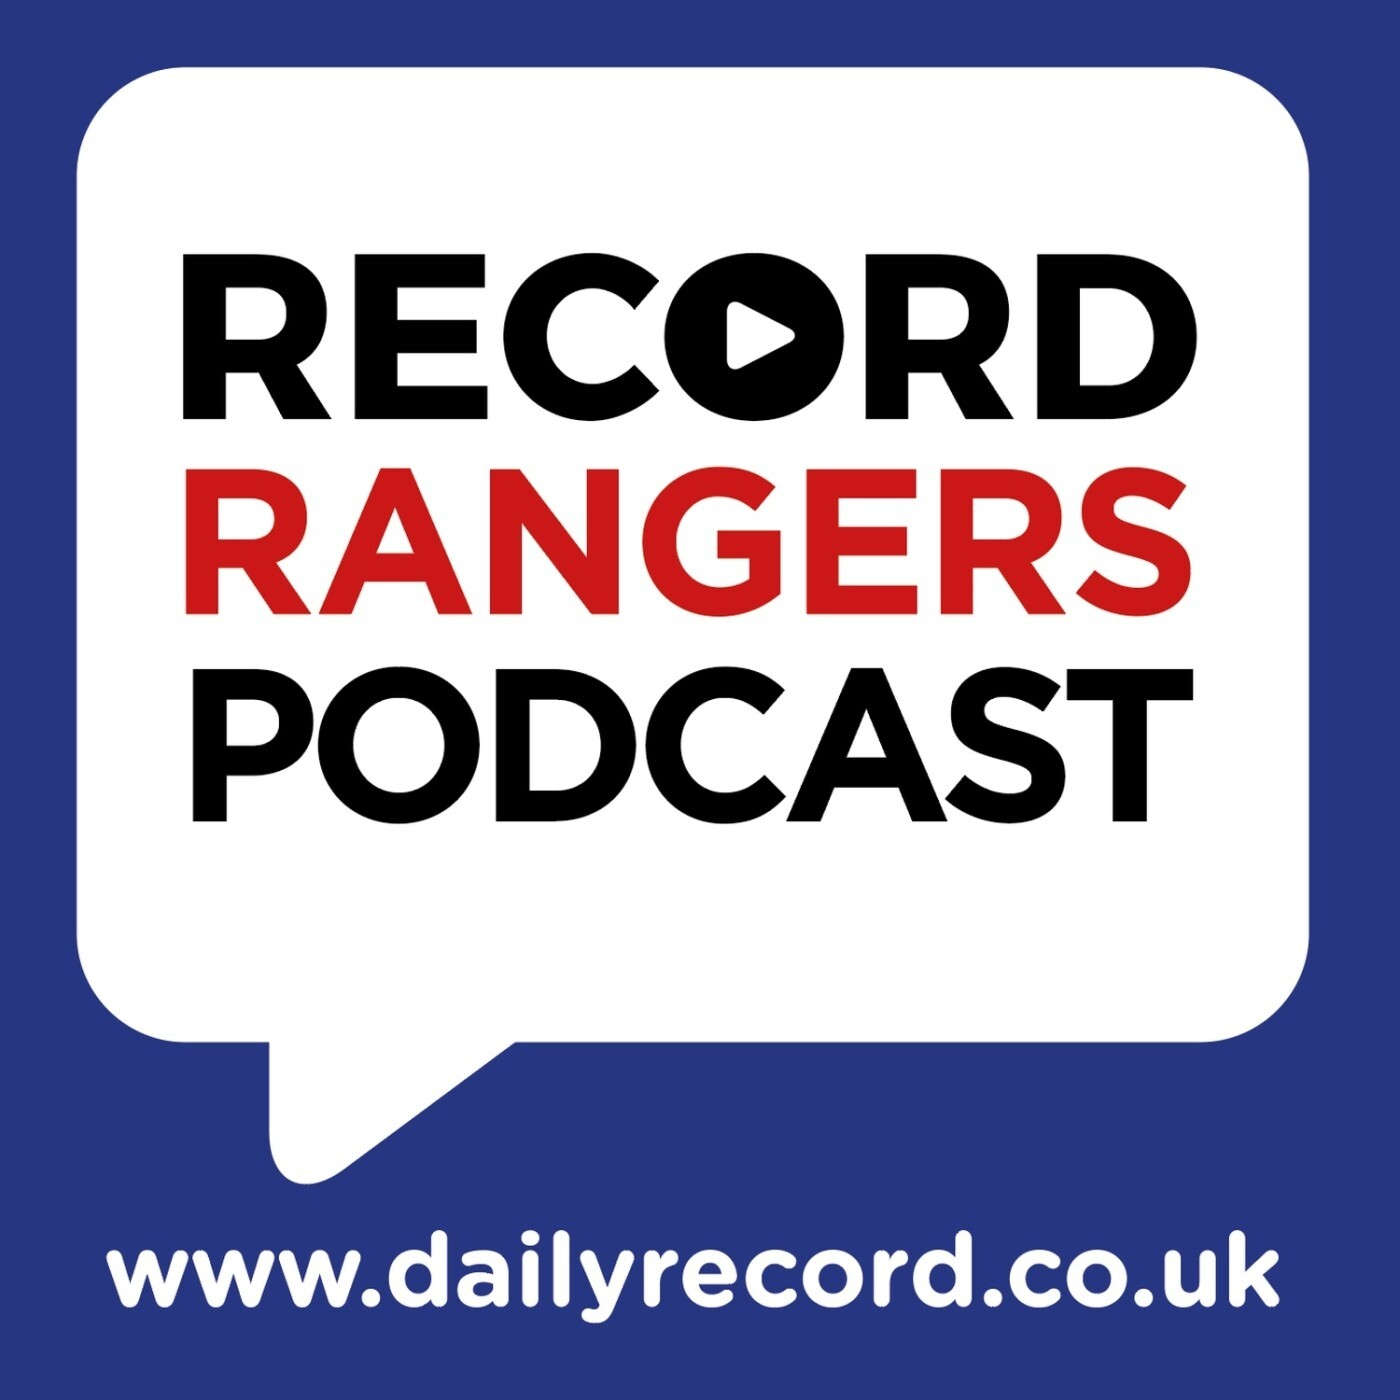 Steven Gerrard's steady Rangers progress   Are Celtic out of the title race?   Is Morelos in danger of losing his pla...